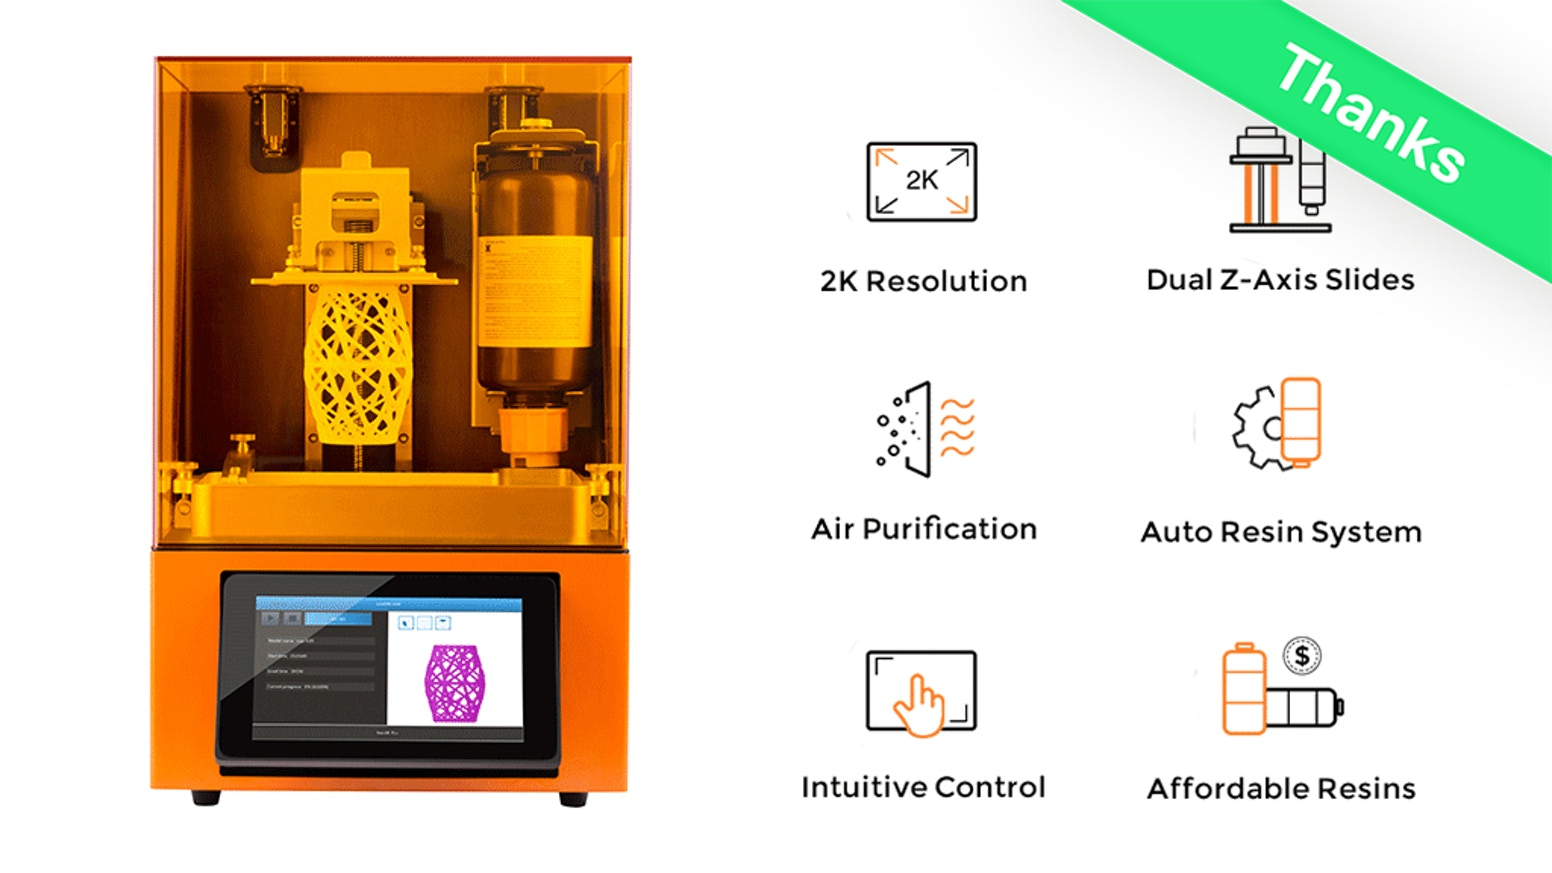 Safe, high-resolution and user-friendly, Dazz 3D provides the professional-level quality and the best 3D printing experience!